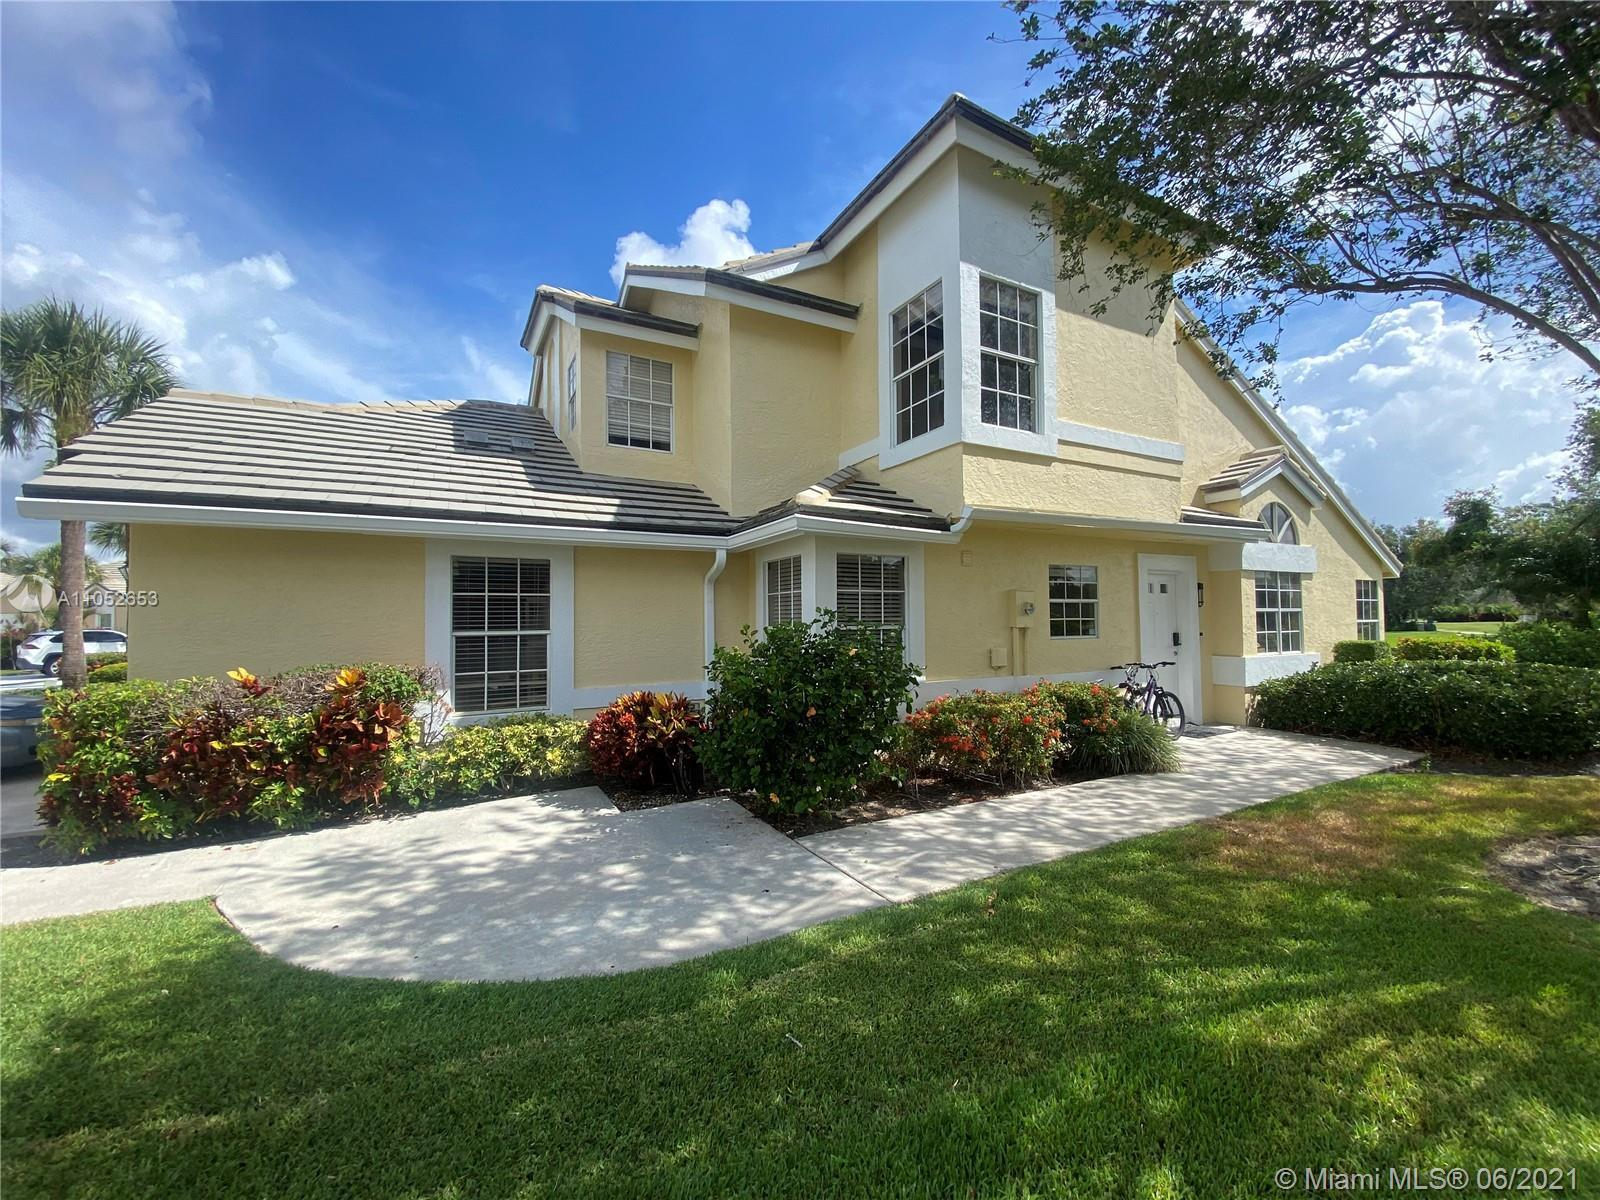 This remodeled two story Villa has beautiful Golf and Lake Views located in Atlantic National @Lucun